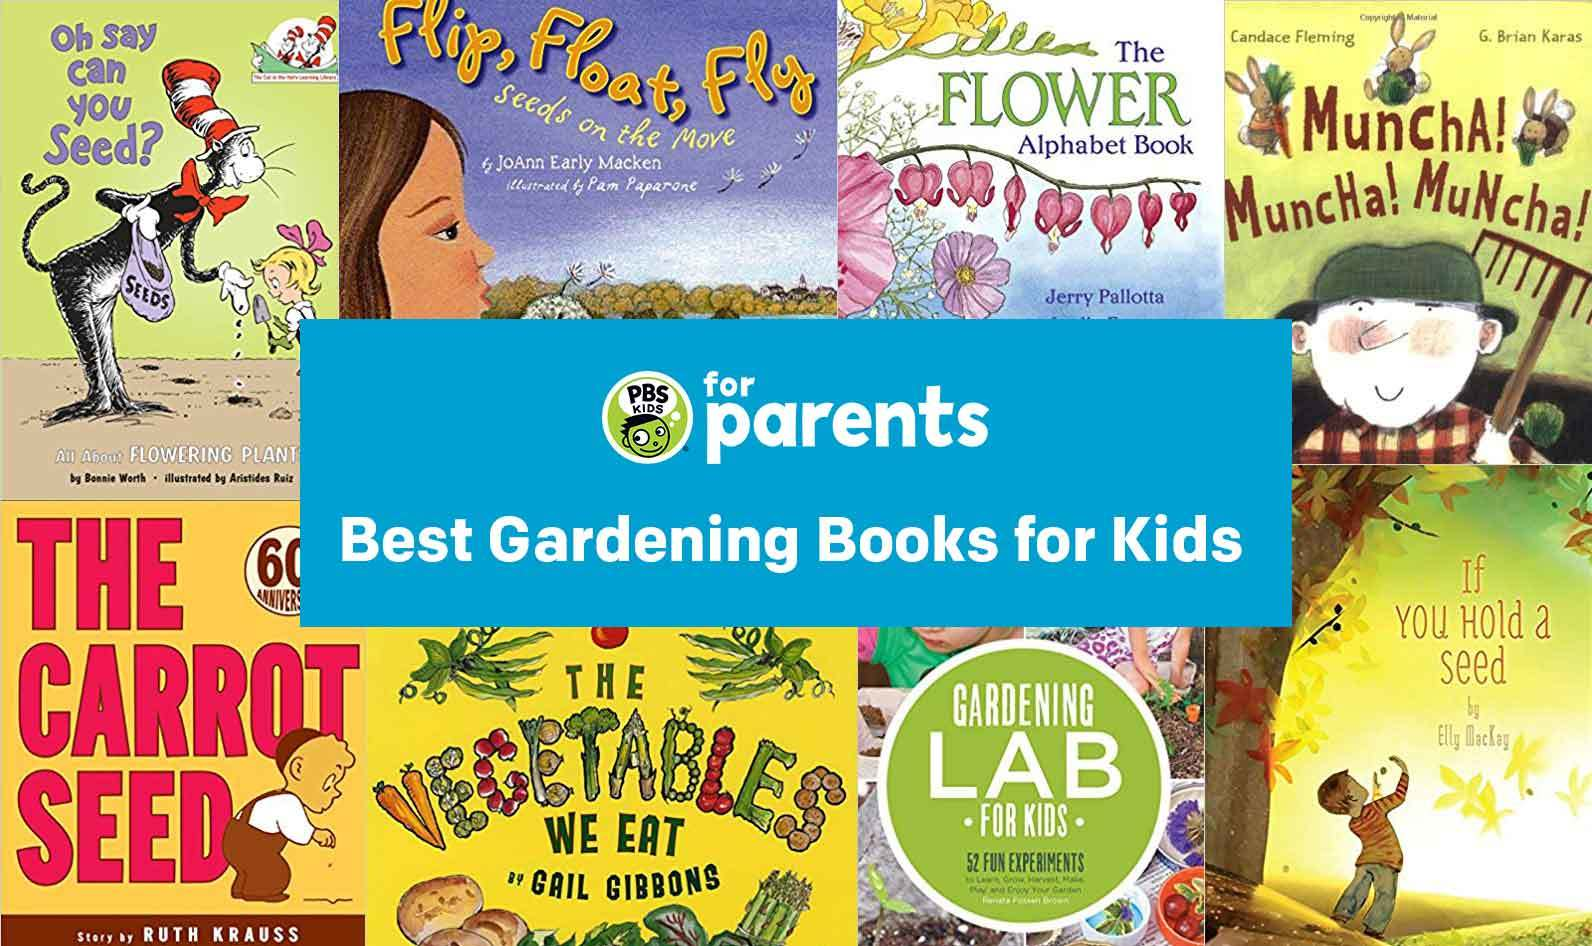 Best Gardening Books for Kids   Parenting Tips & Advice   PBS KIDS for Parents